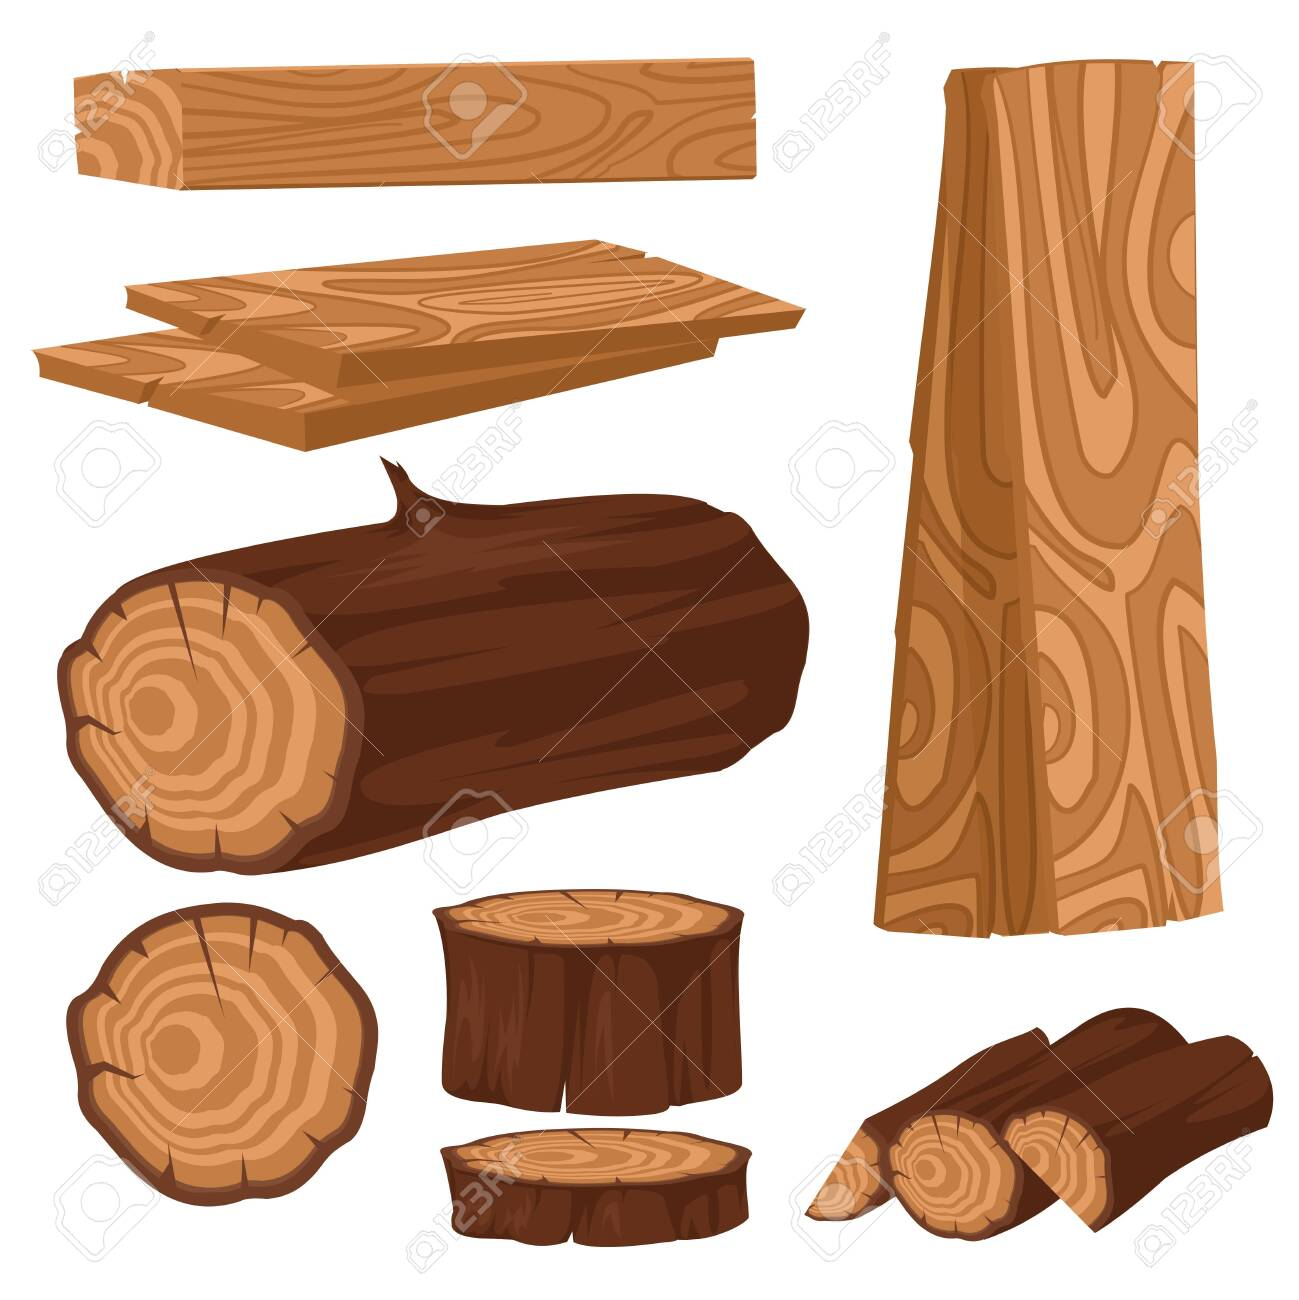 Cartoon Color Wood Industry Raw Materials Icons Set. Vector - 148700525